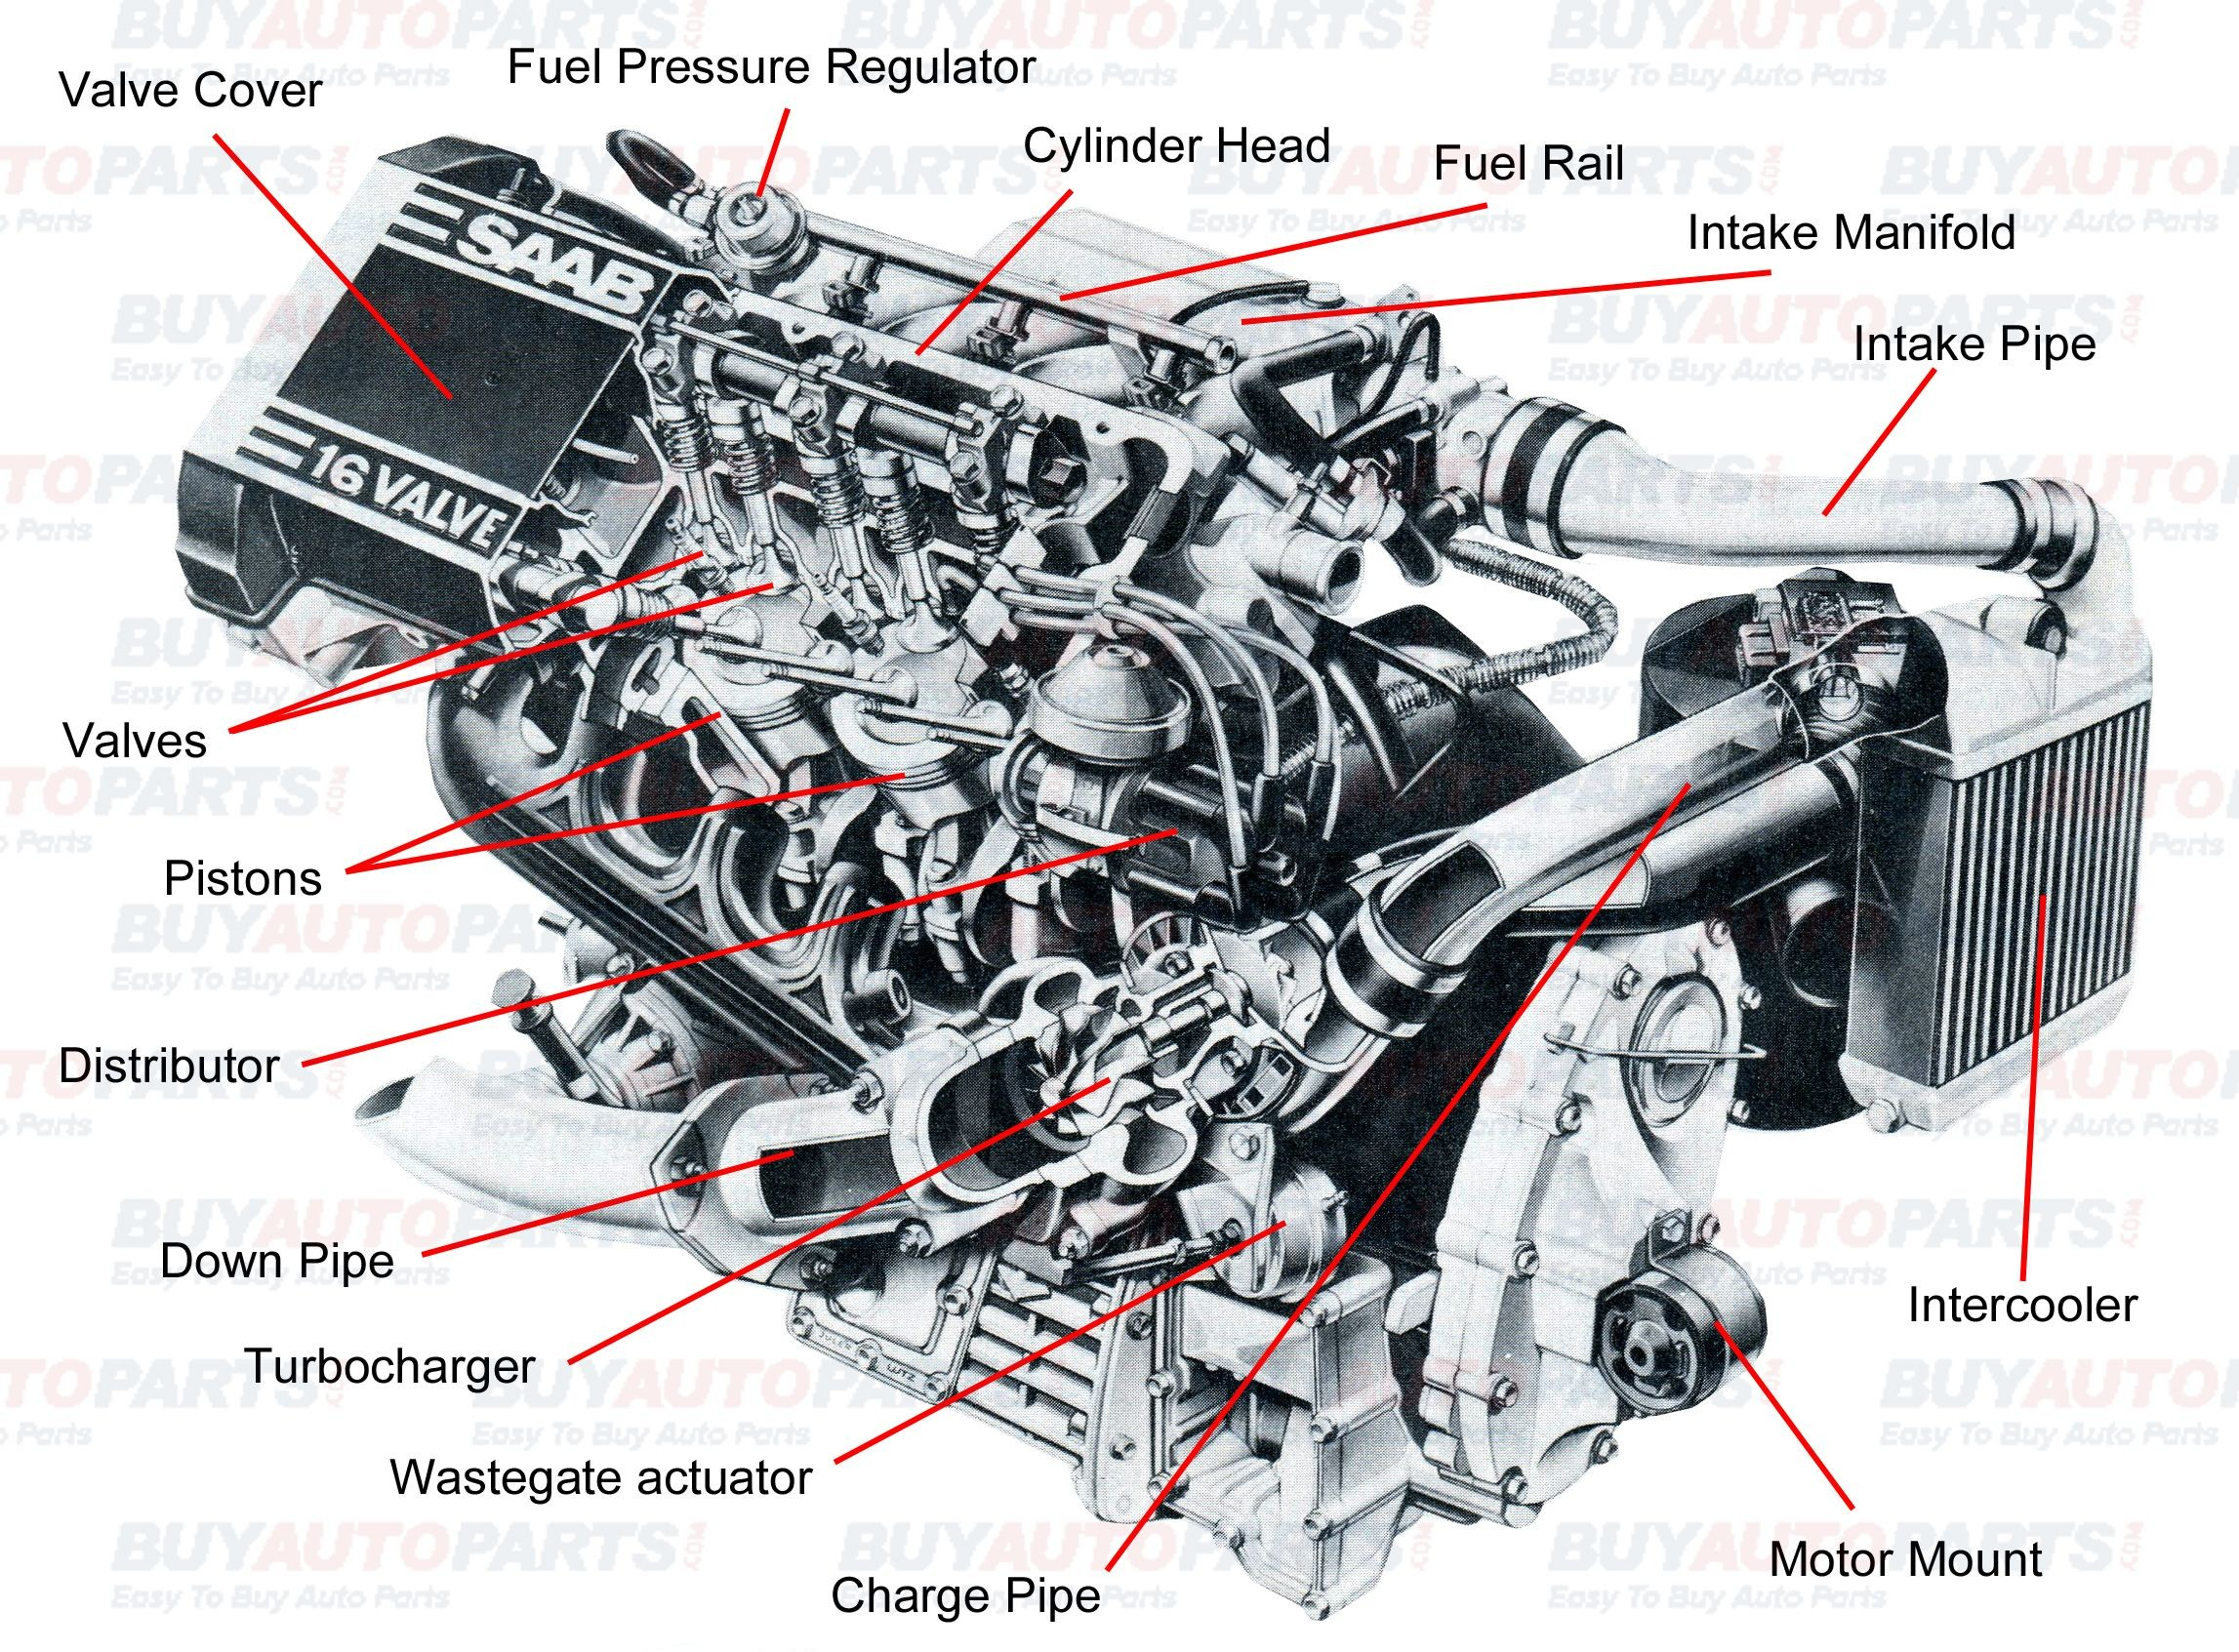 Car Engine Cooling System Diagram Pin by Jimmiejanet Testellamwfz On What Does An Engine with Of Car Engine Cooling System Diagram